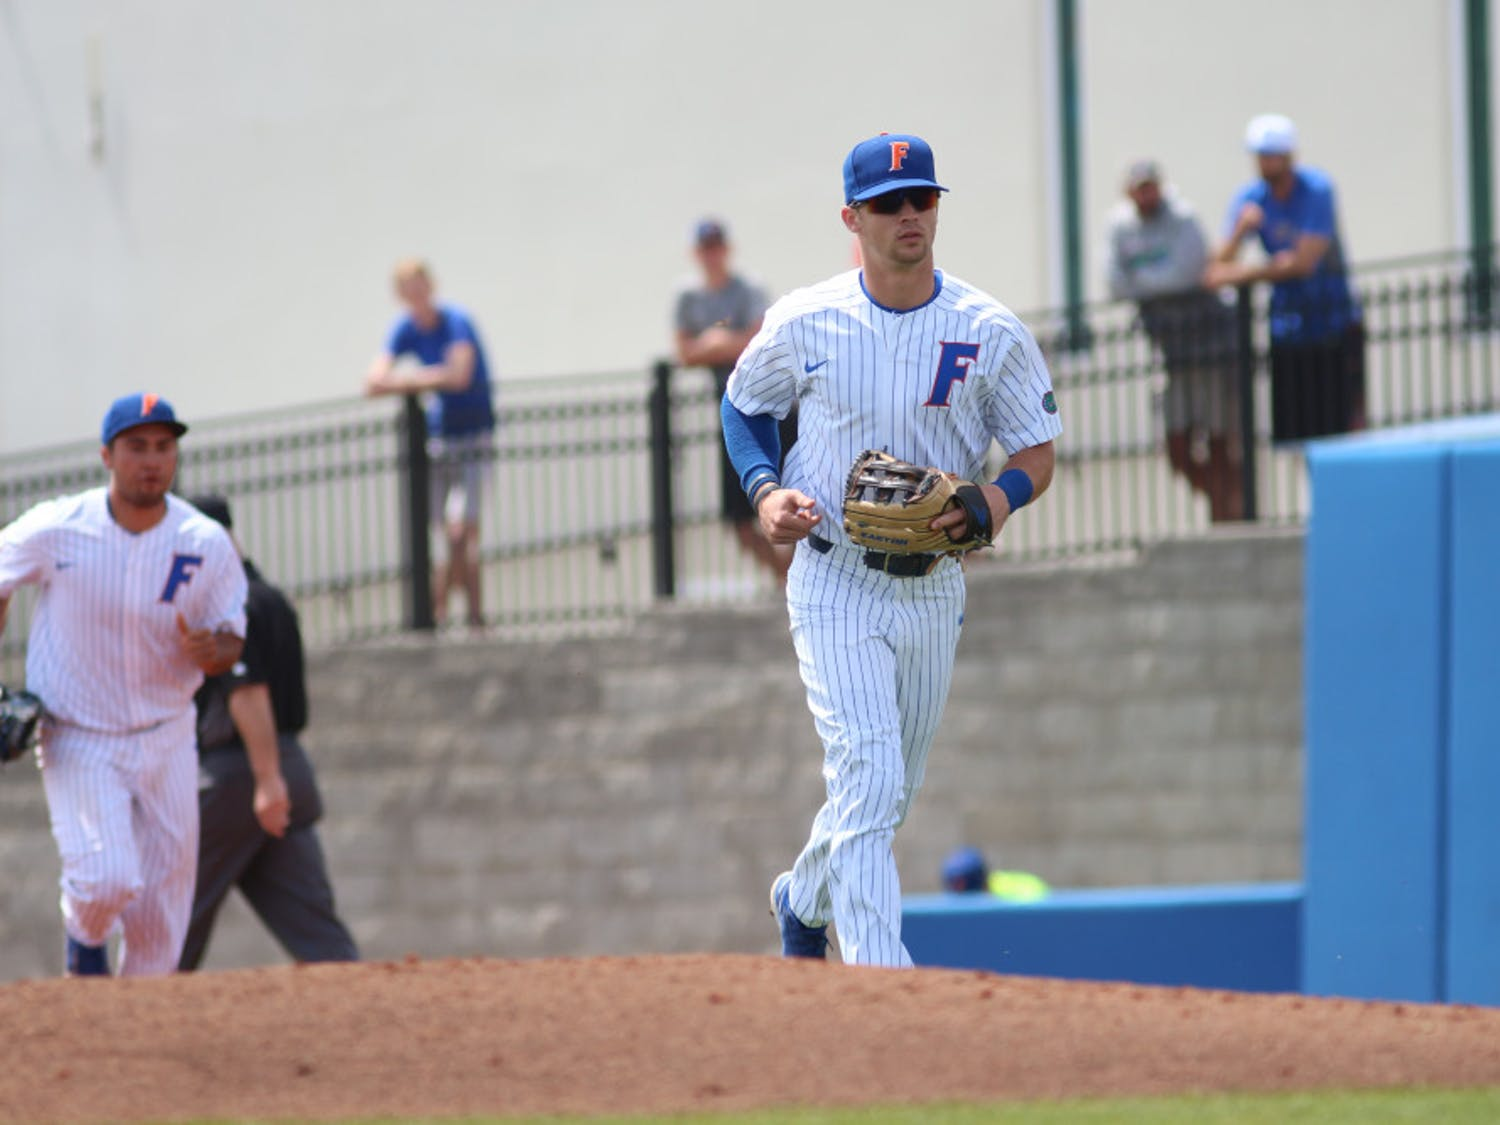 Right fielder Wil Dalton went 4 for 5 on Friday in Florida's 13-5 win over Columbia at the Gainesville Regional. He nearly hit the cycle but was thrown out sliding into third base.